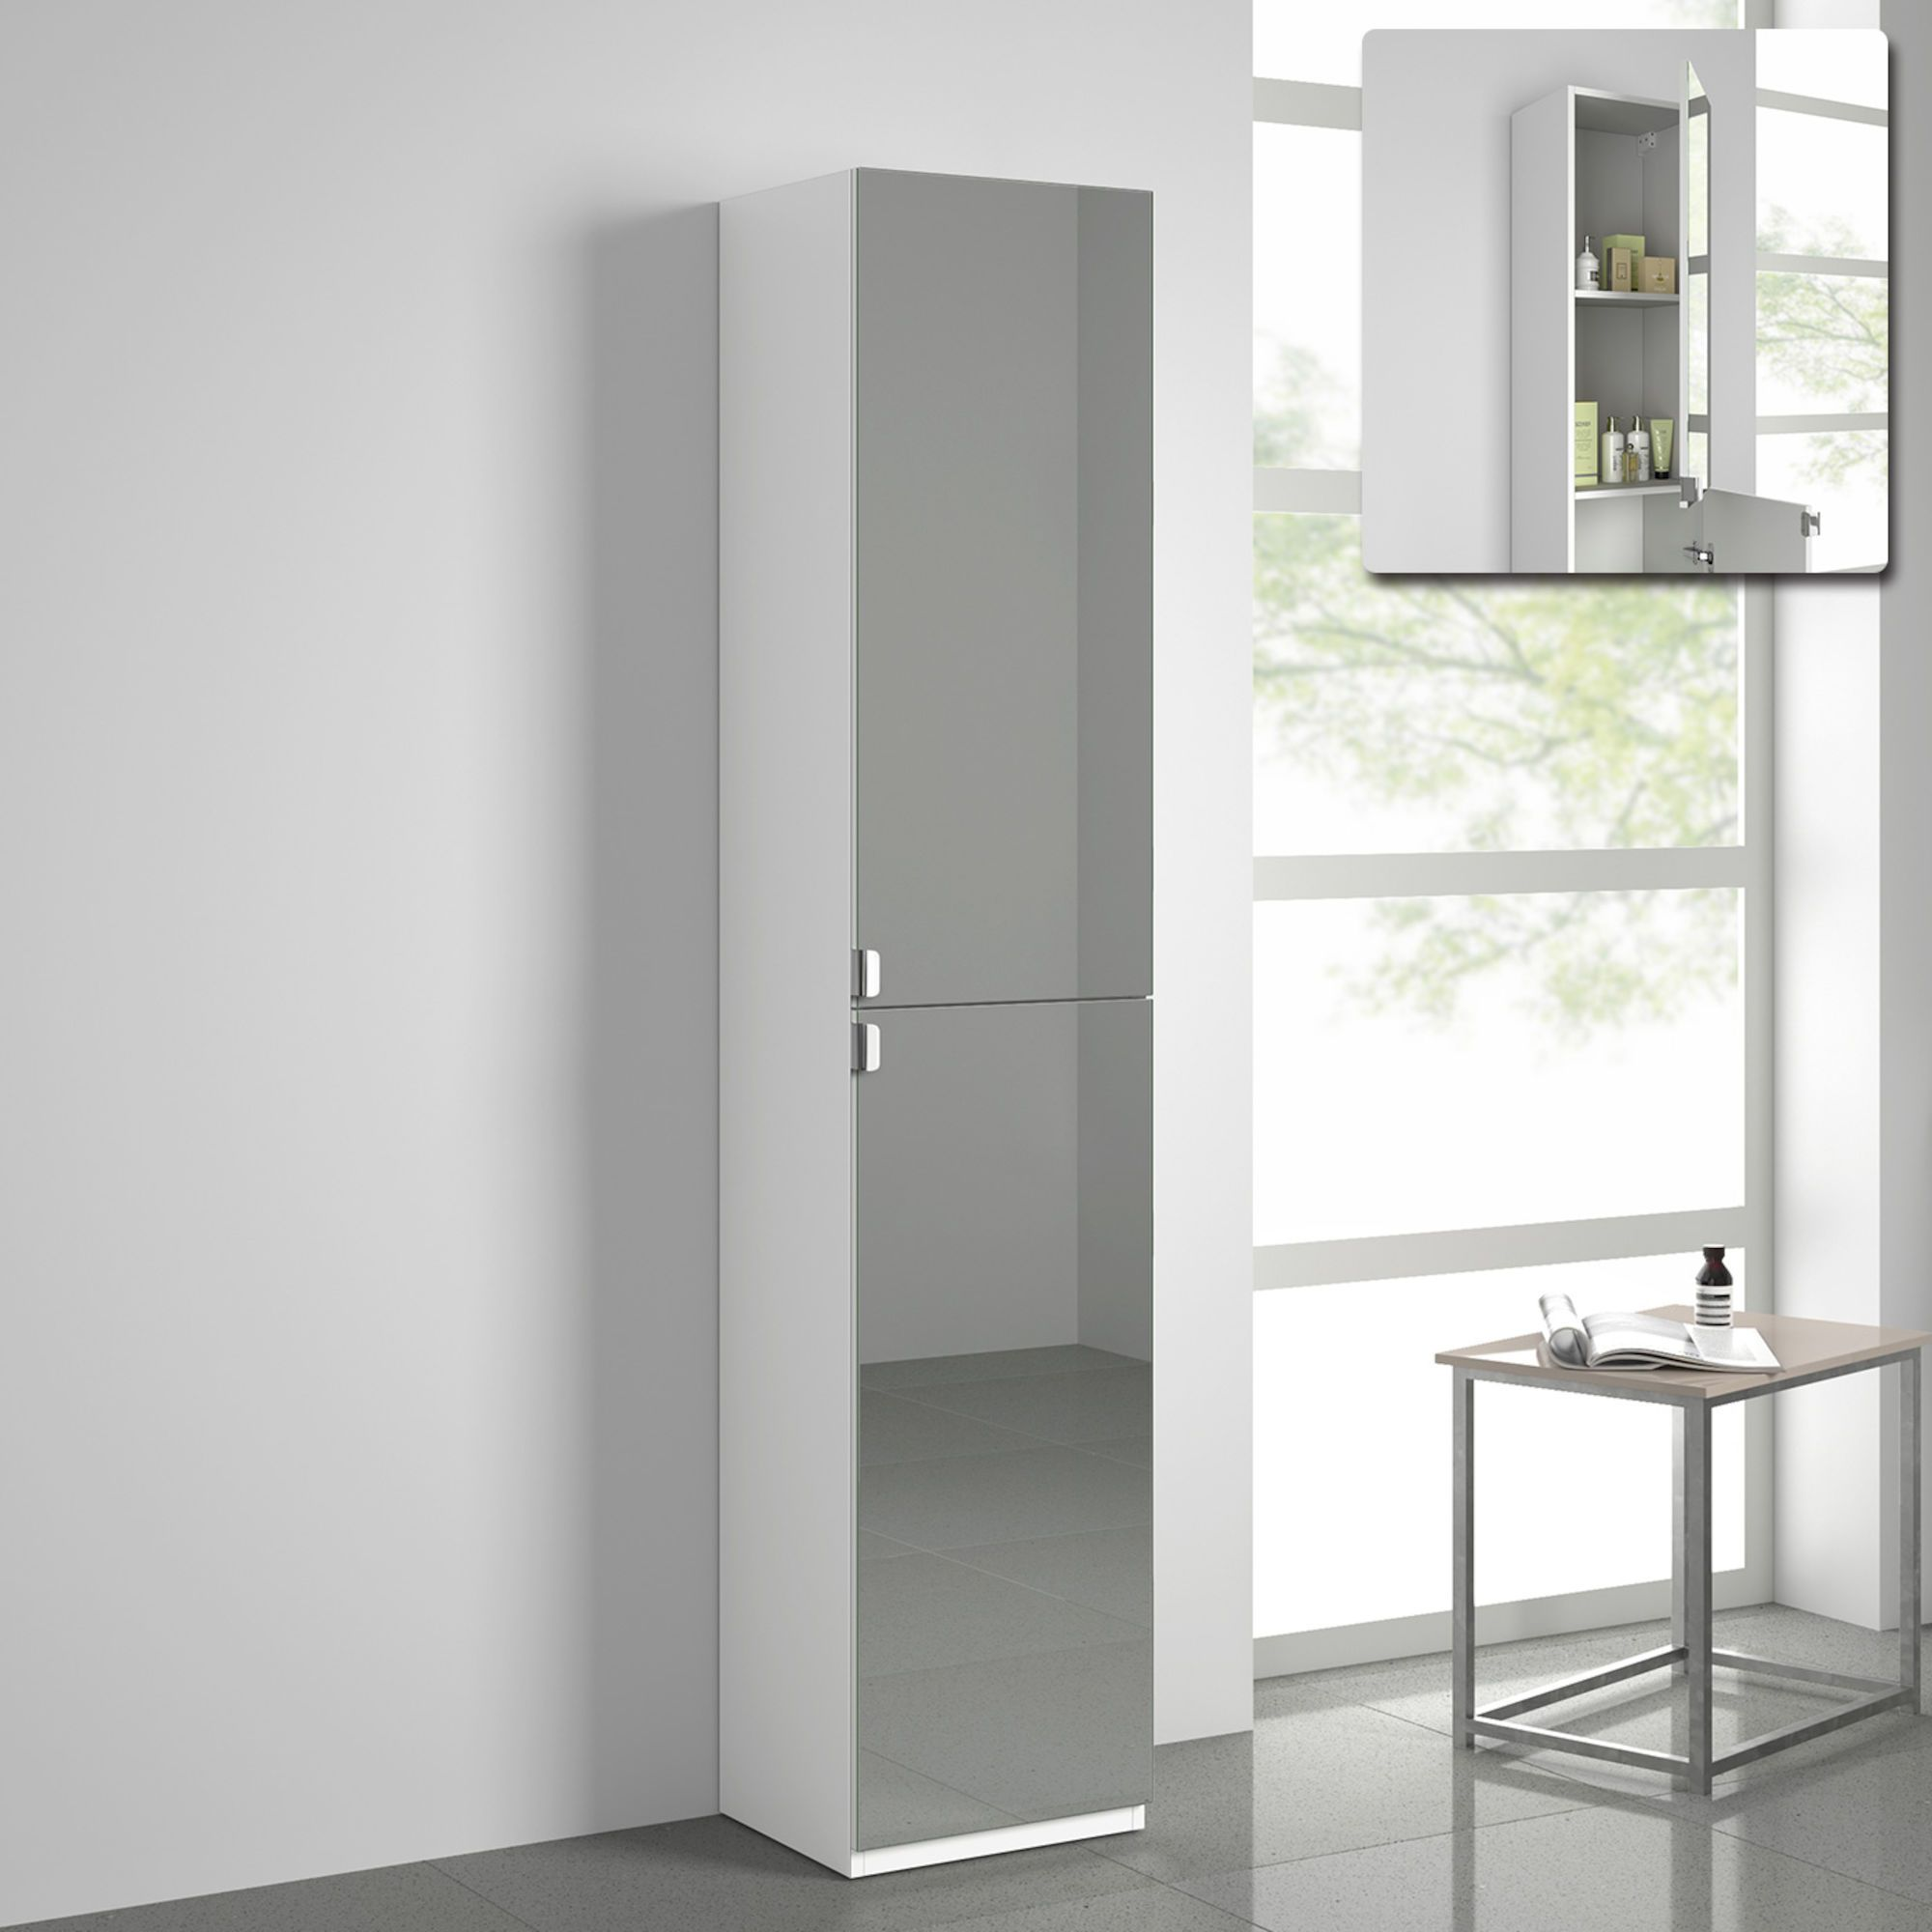 Tall Mirror Cabinet Ireland White Tall Bathroom Unit Ie Soak Com Tall Cabinet Storage Storage Furniture Tall Bathroom Storage Cabinet